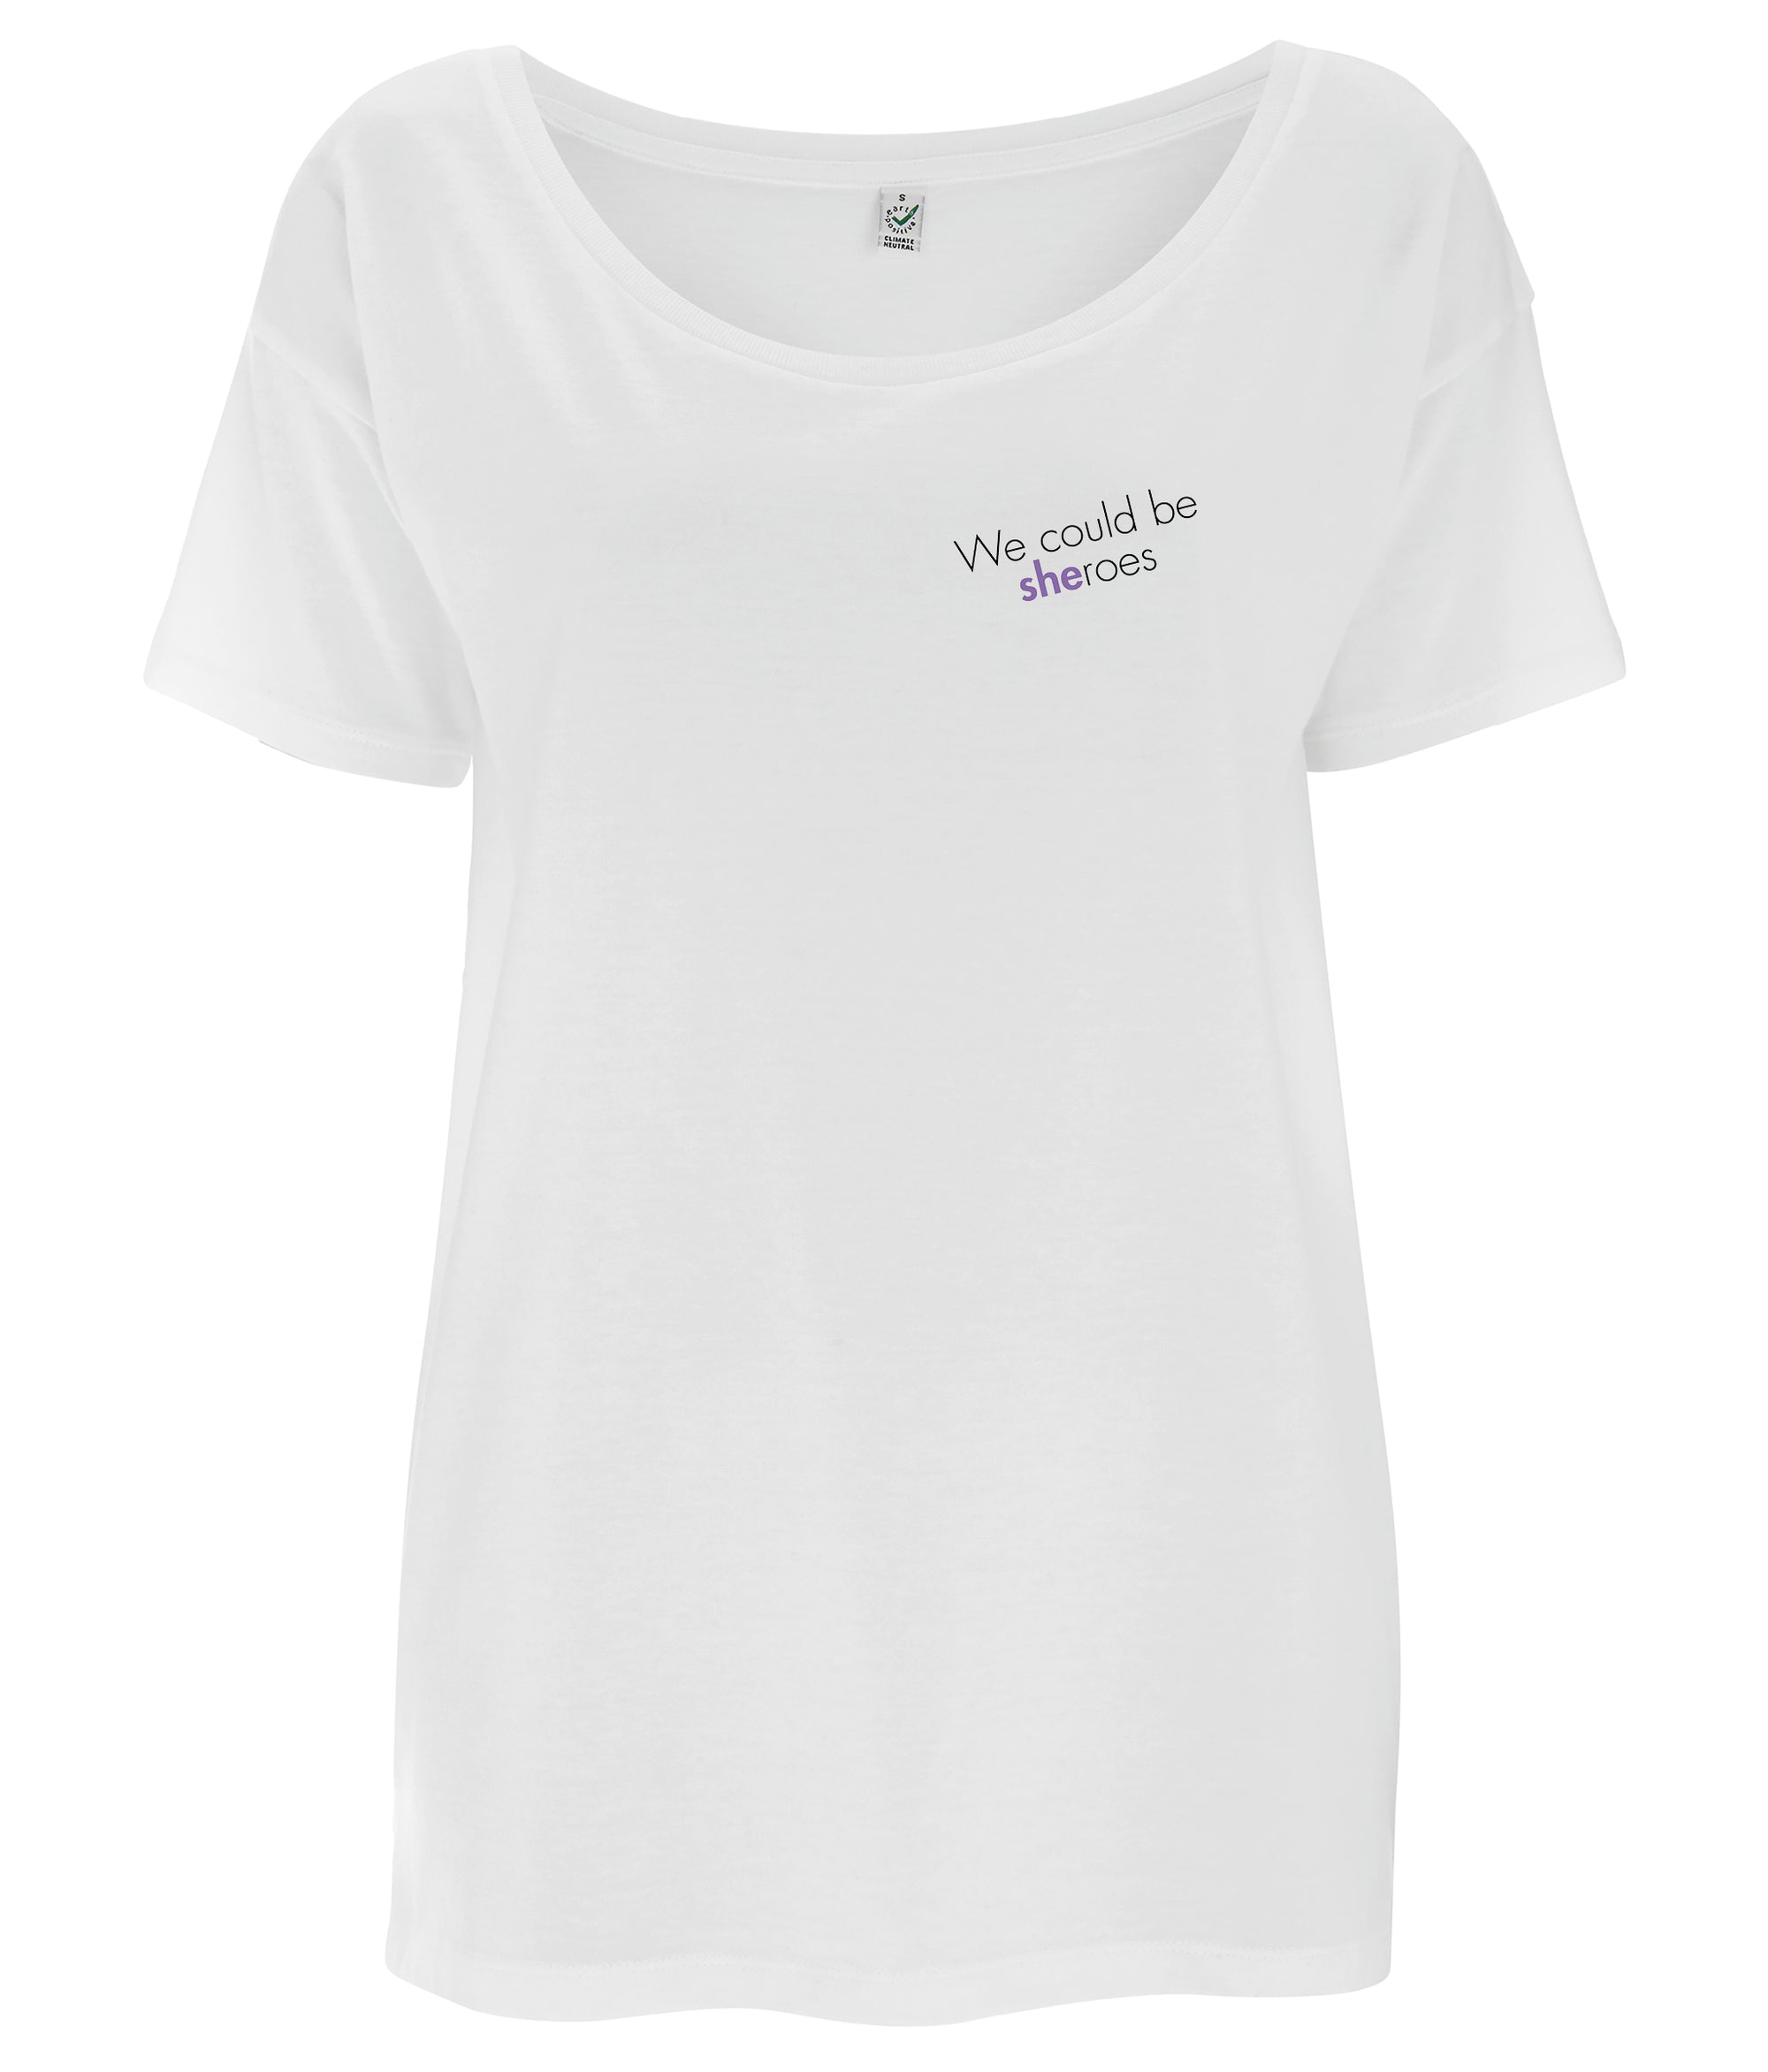 We Could Be Sheroes Tencel Blend Oversized Feminist T Shirt White